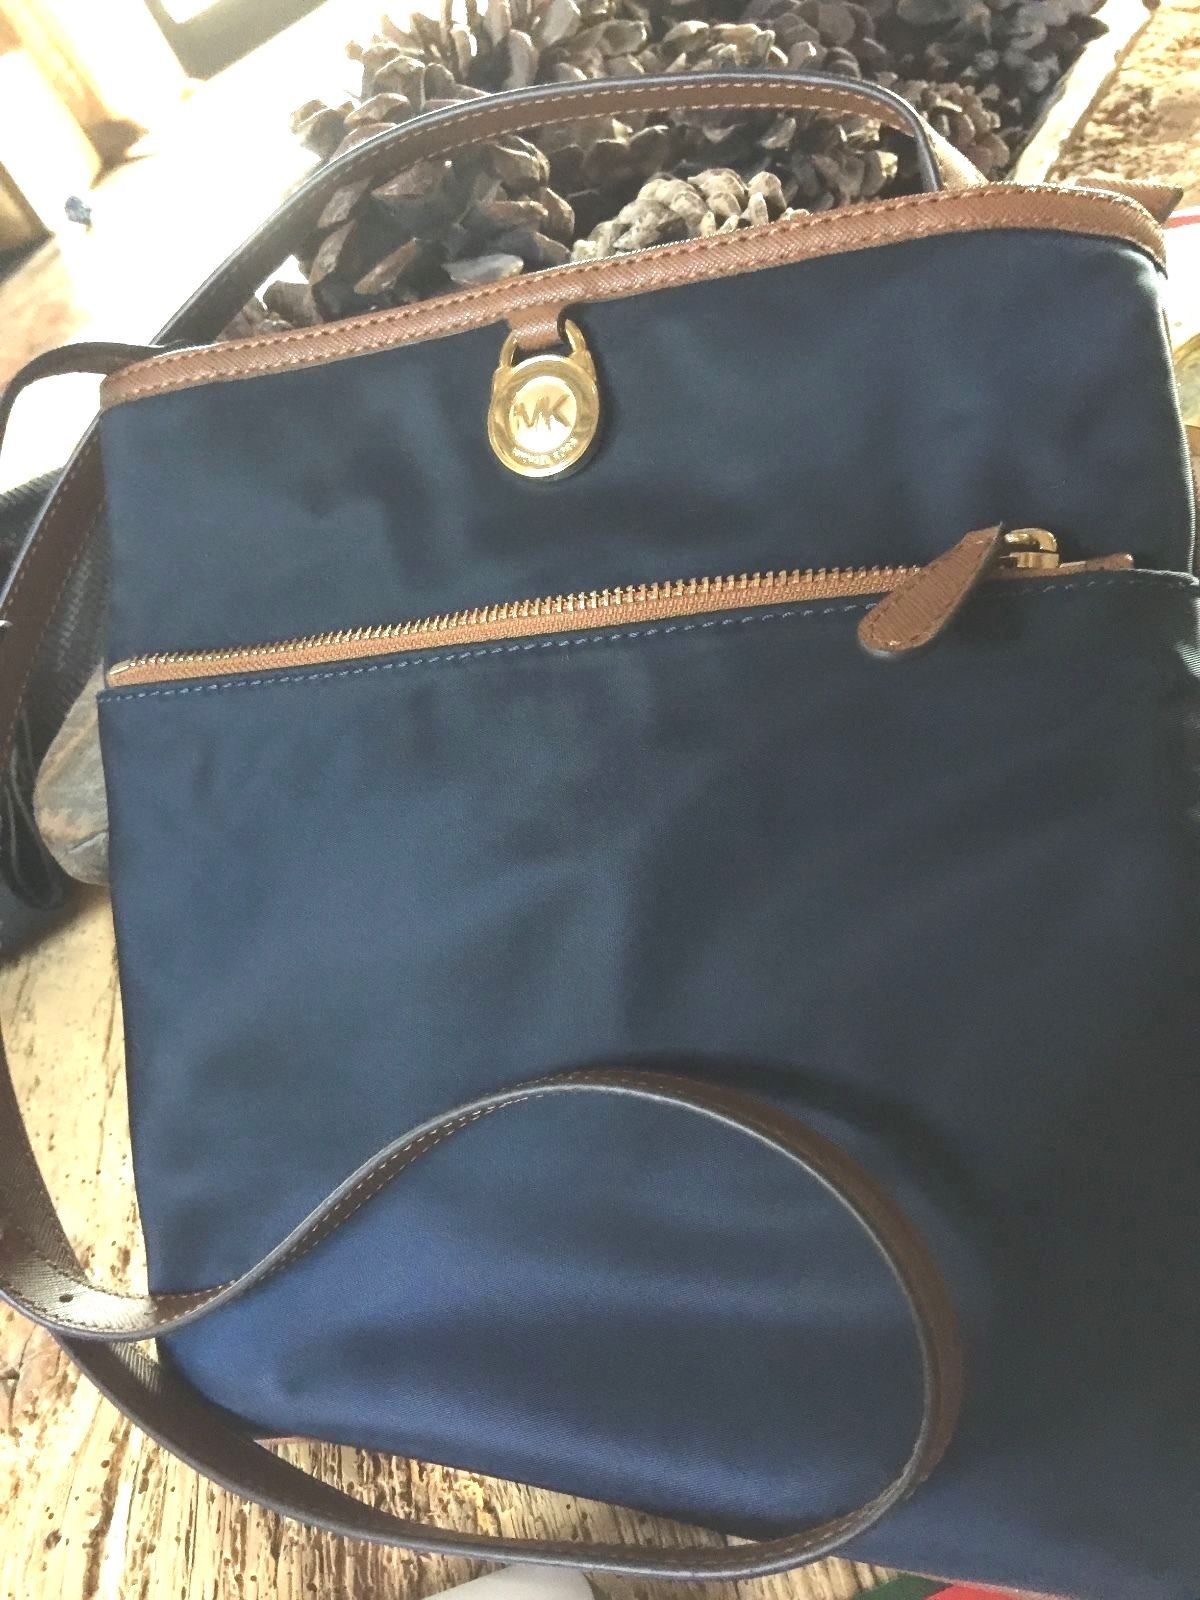 6704821f1948f9 57. 57. Previous. New Michael Kors Kempton Large Pocket Crossbody Bag - Navy/Yellow  Nylon · New Michael Kors Kempton ...